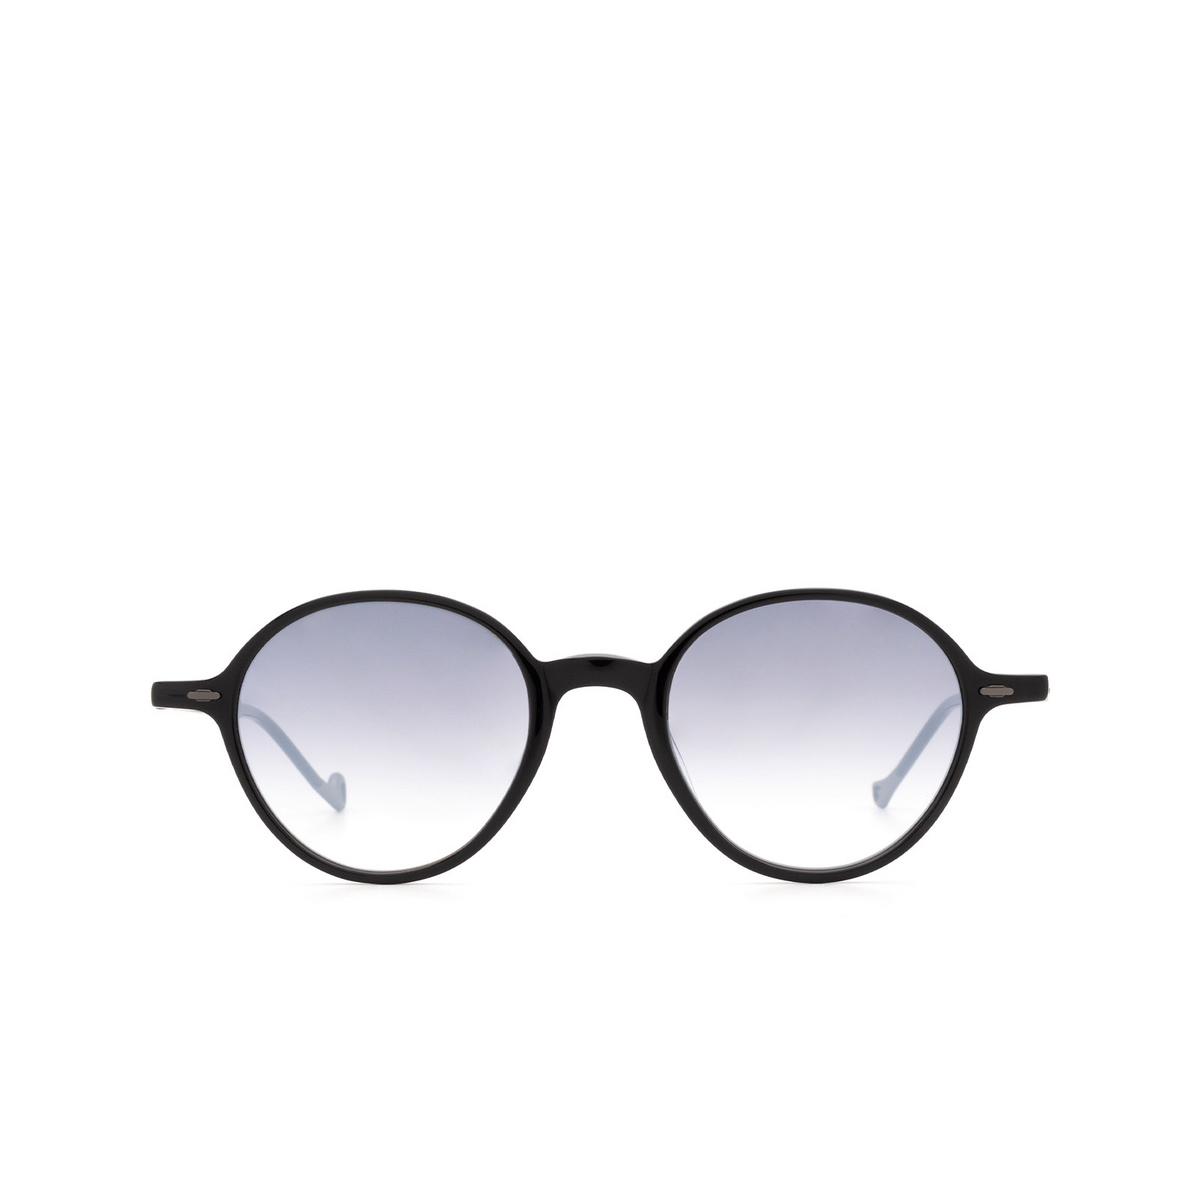 Eyepetizer® Round Sunglasses: Sforza color Black C.A-27F - front view.